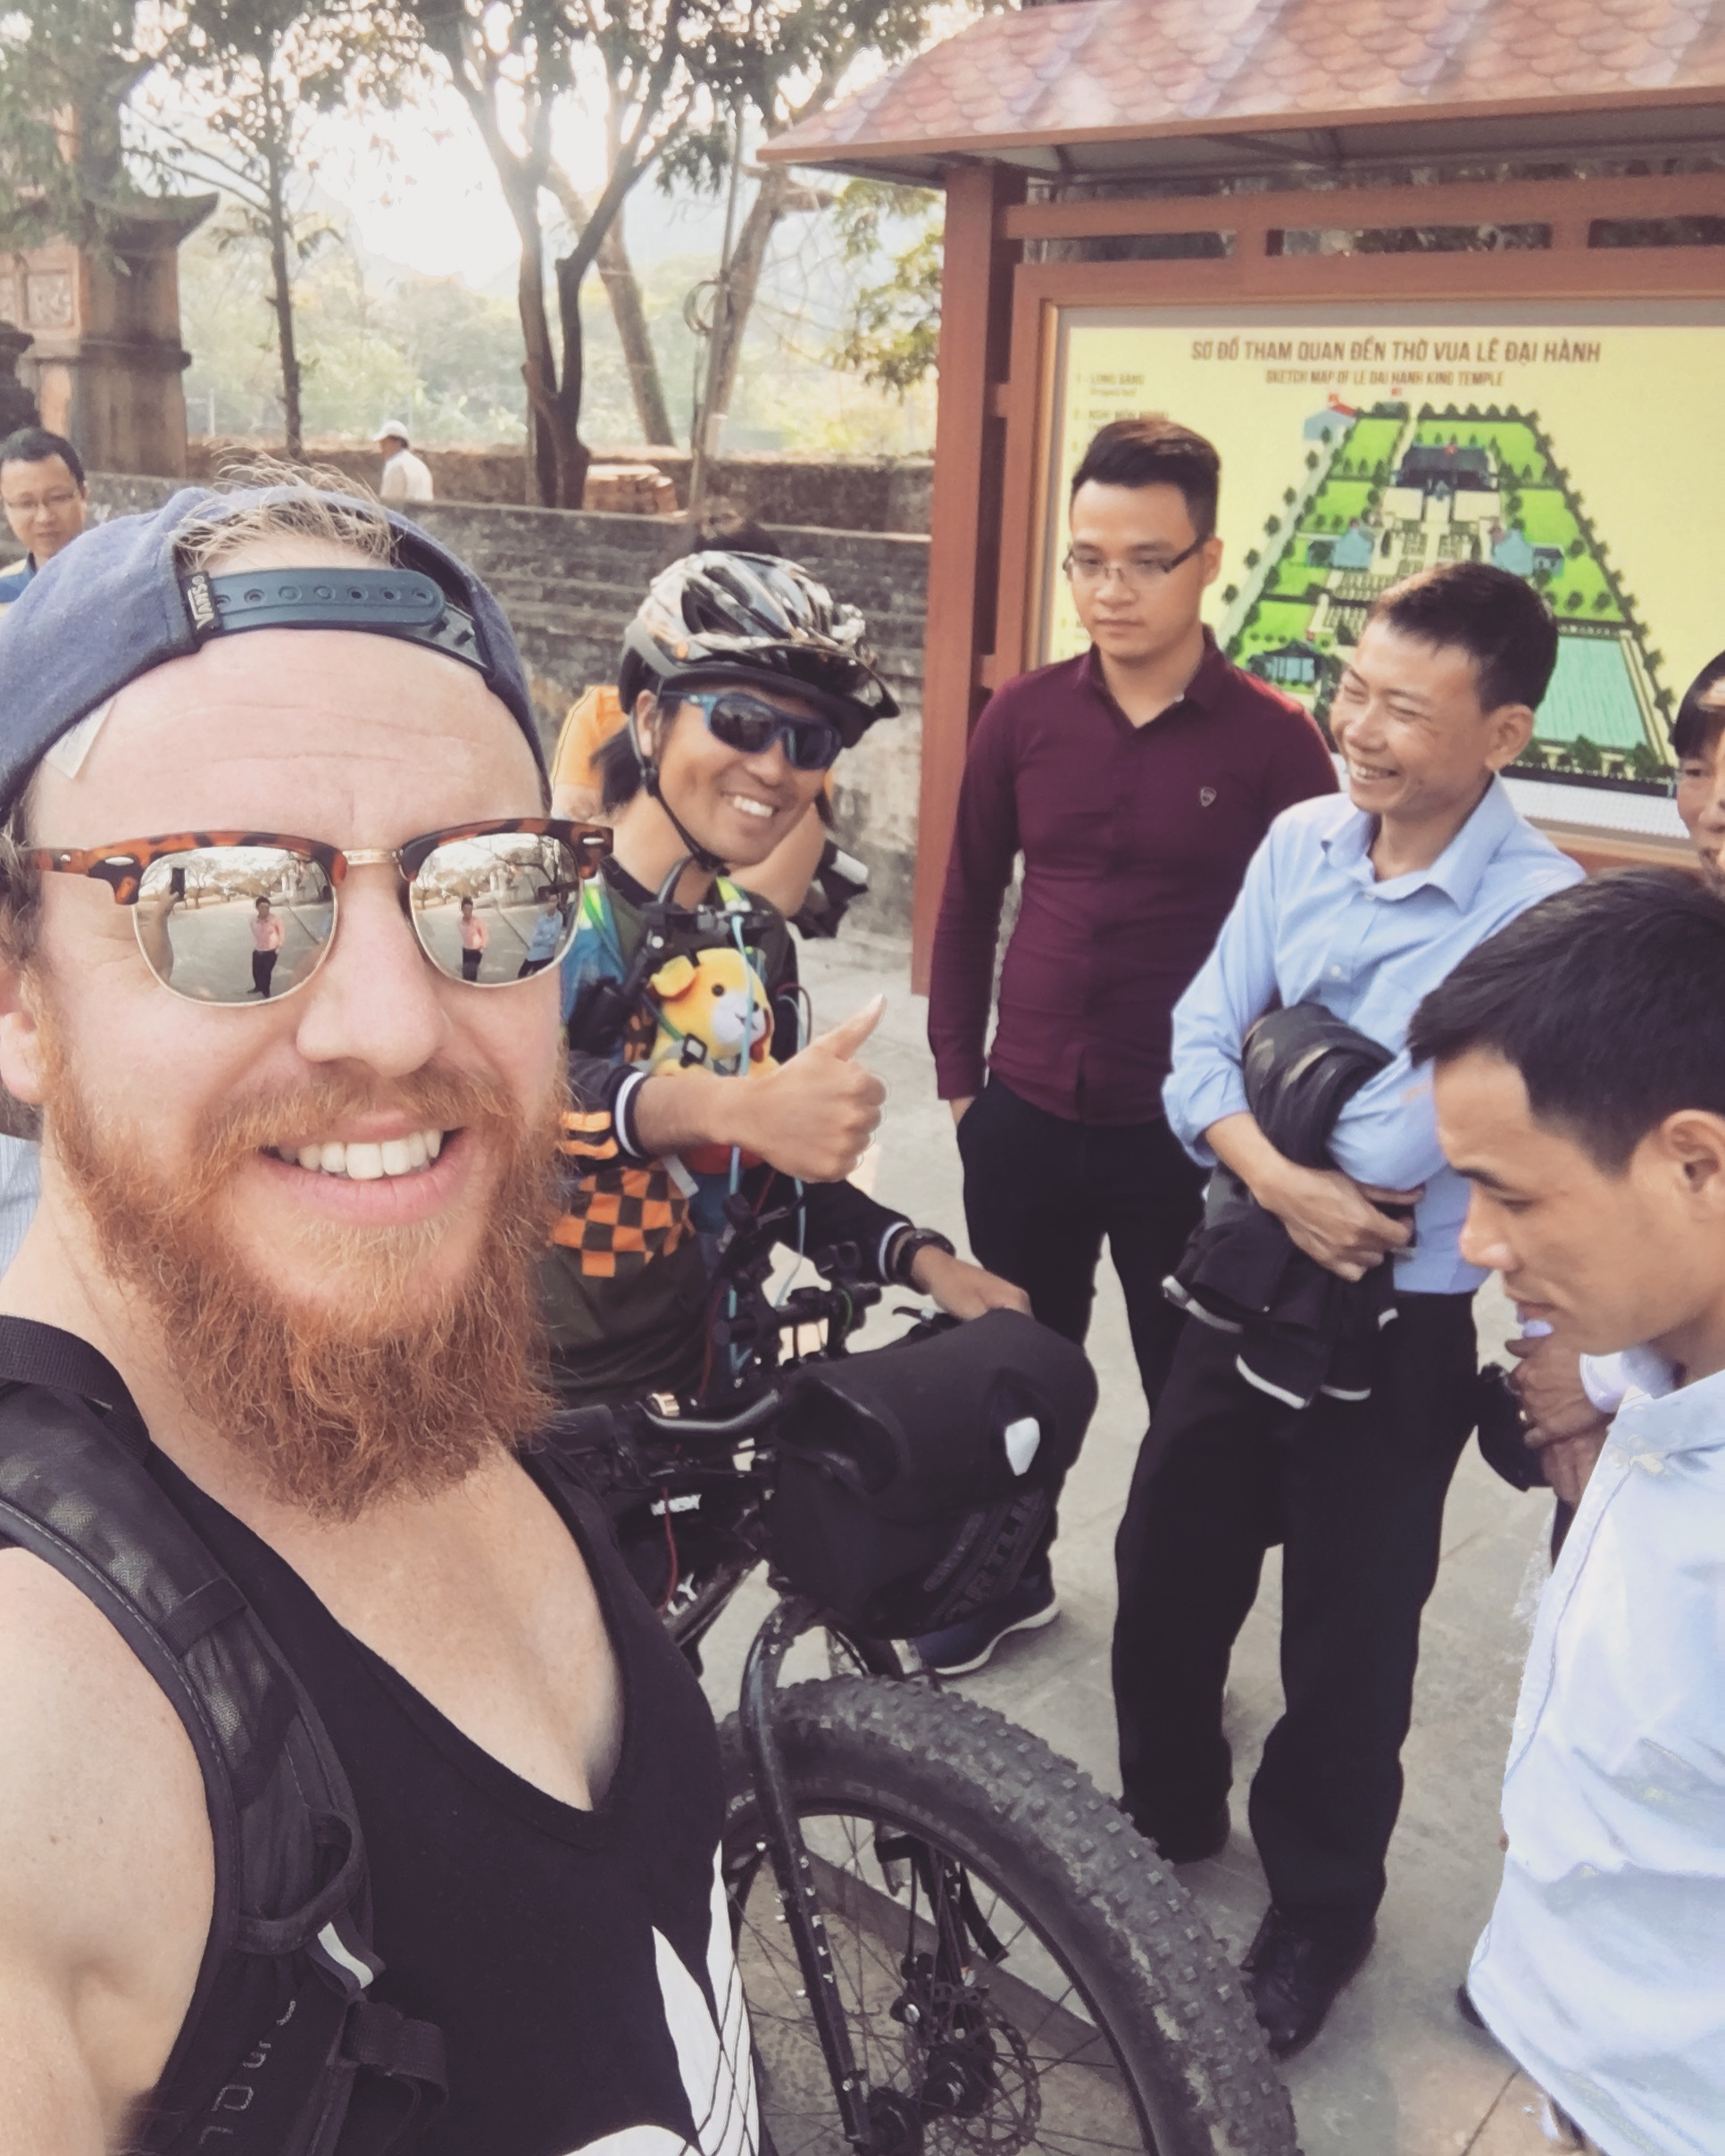 Mac and I surrounded by locals in Vietnams ancient former capital Hoa Lư